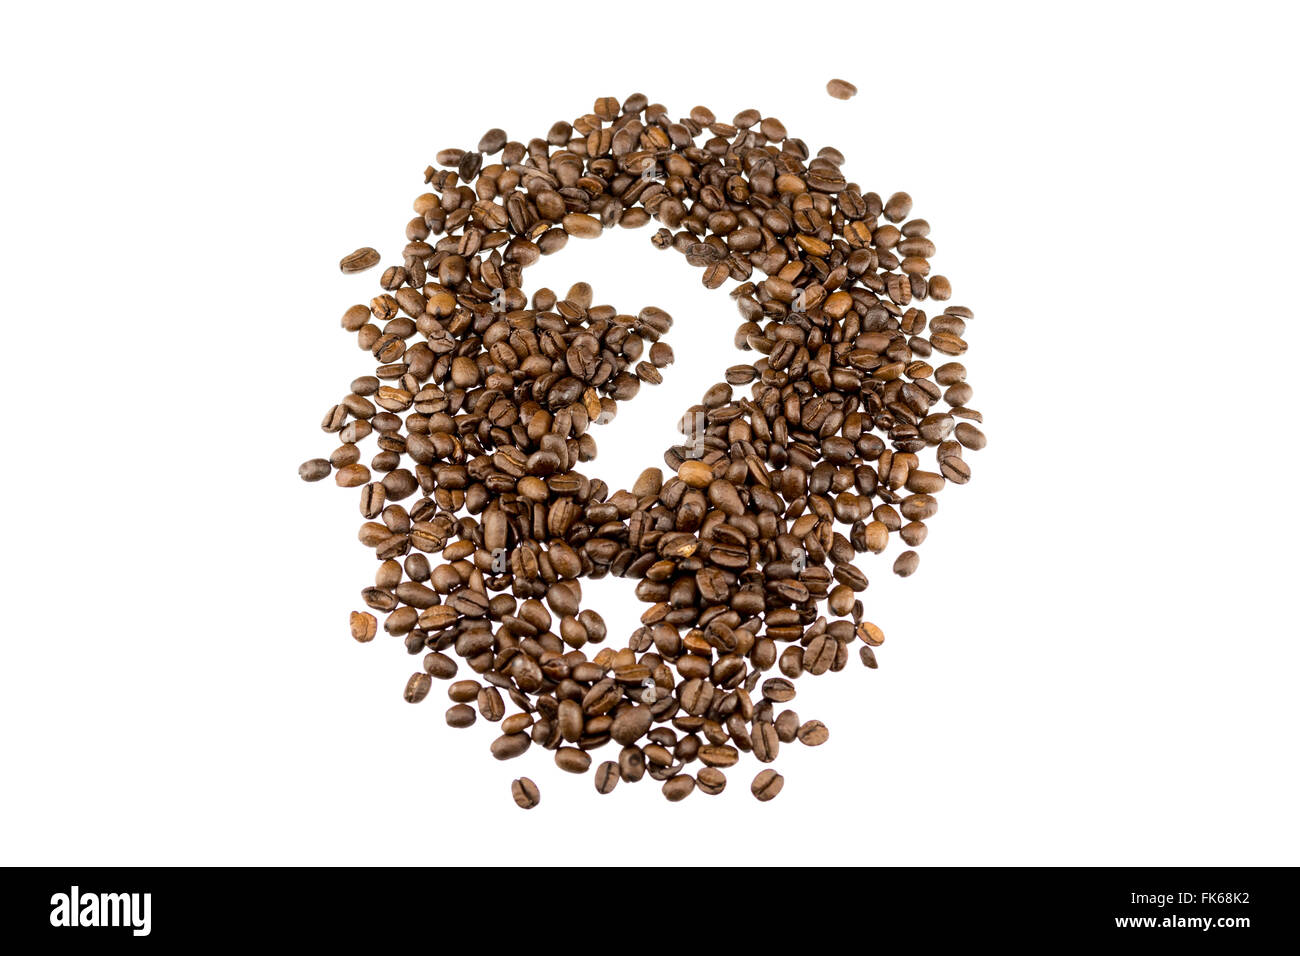 a question mark in coffe beans on a white background - Stock Image